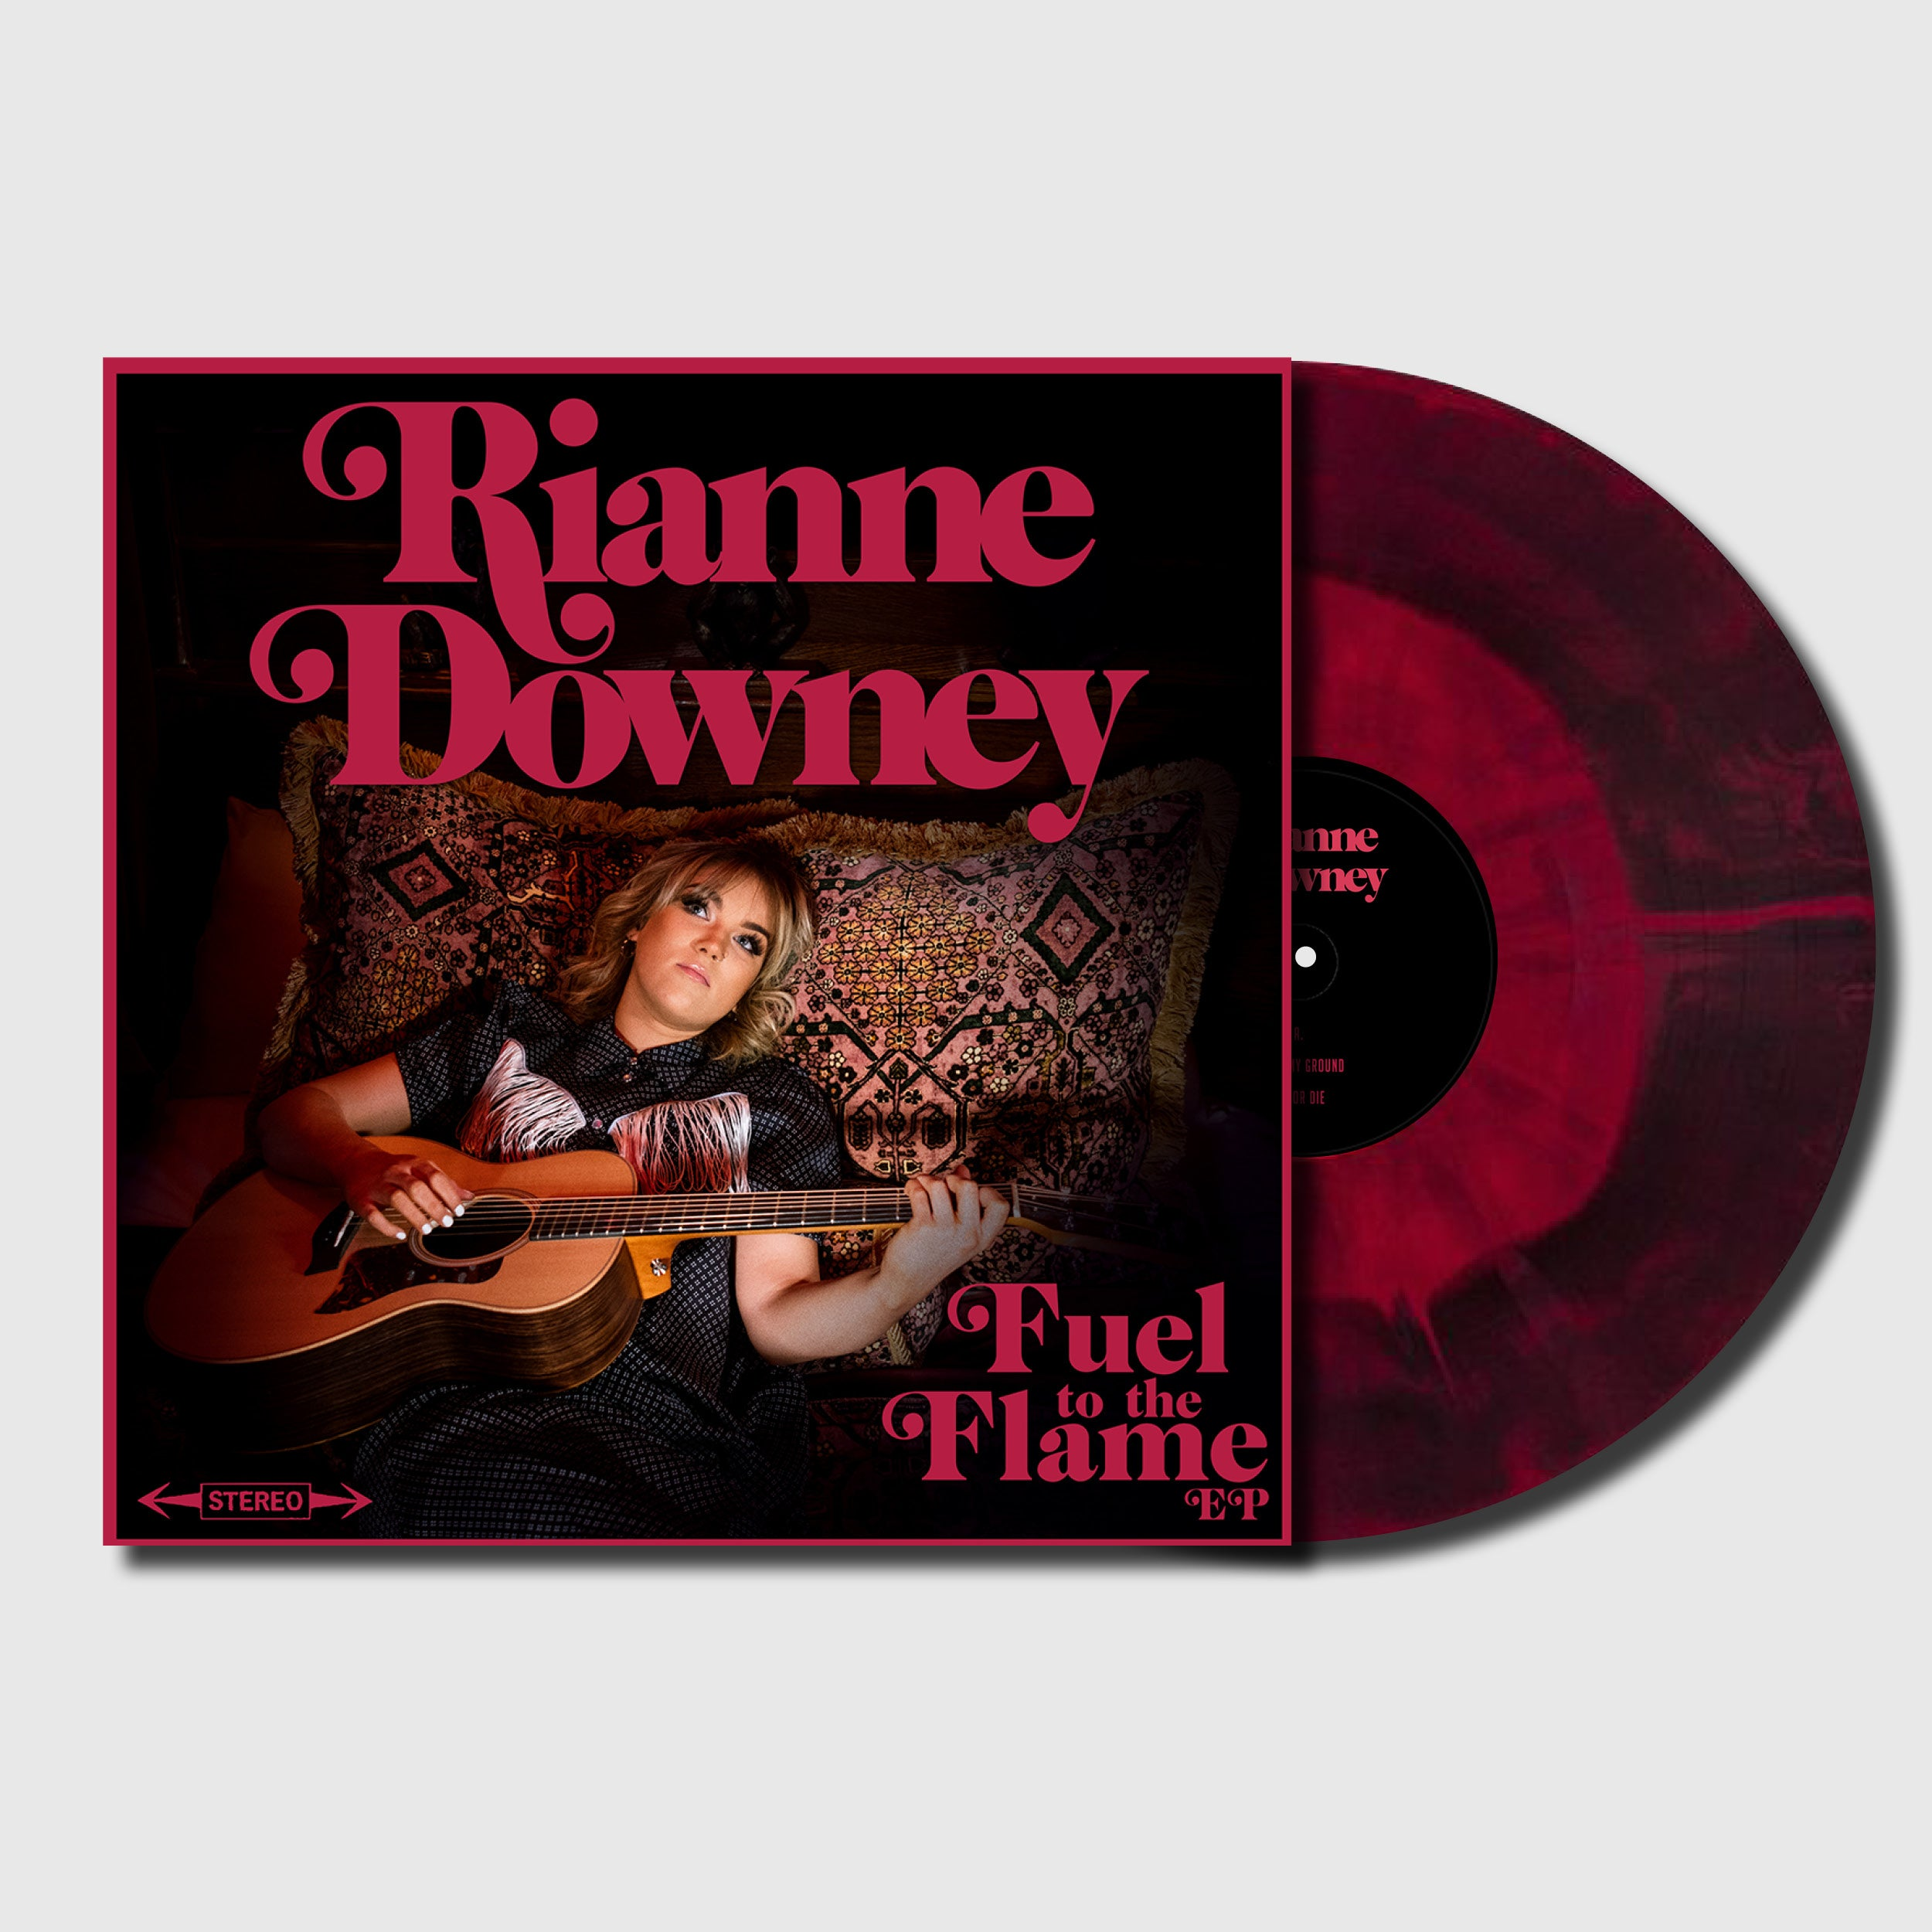 Rianne Downey: Fuel To The Flame EP